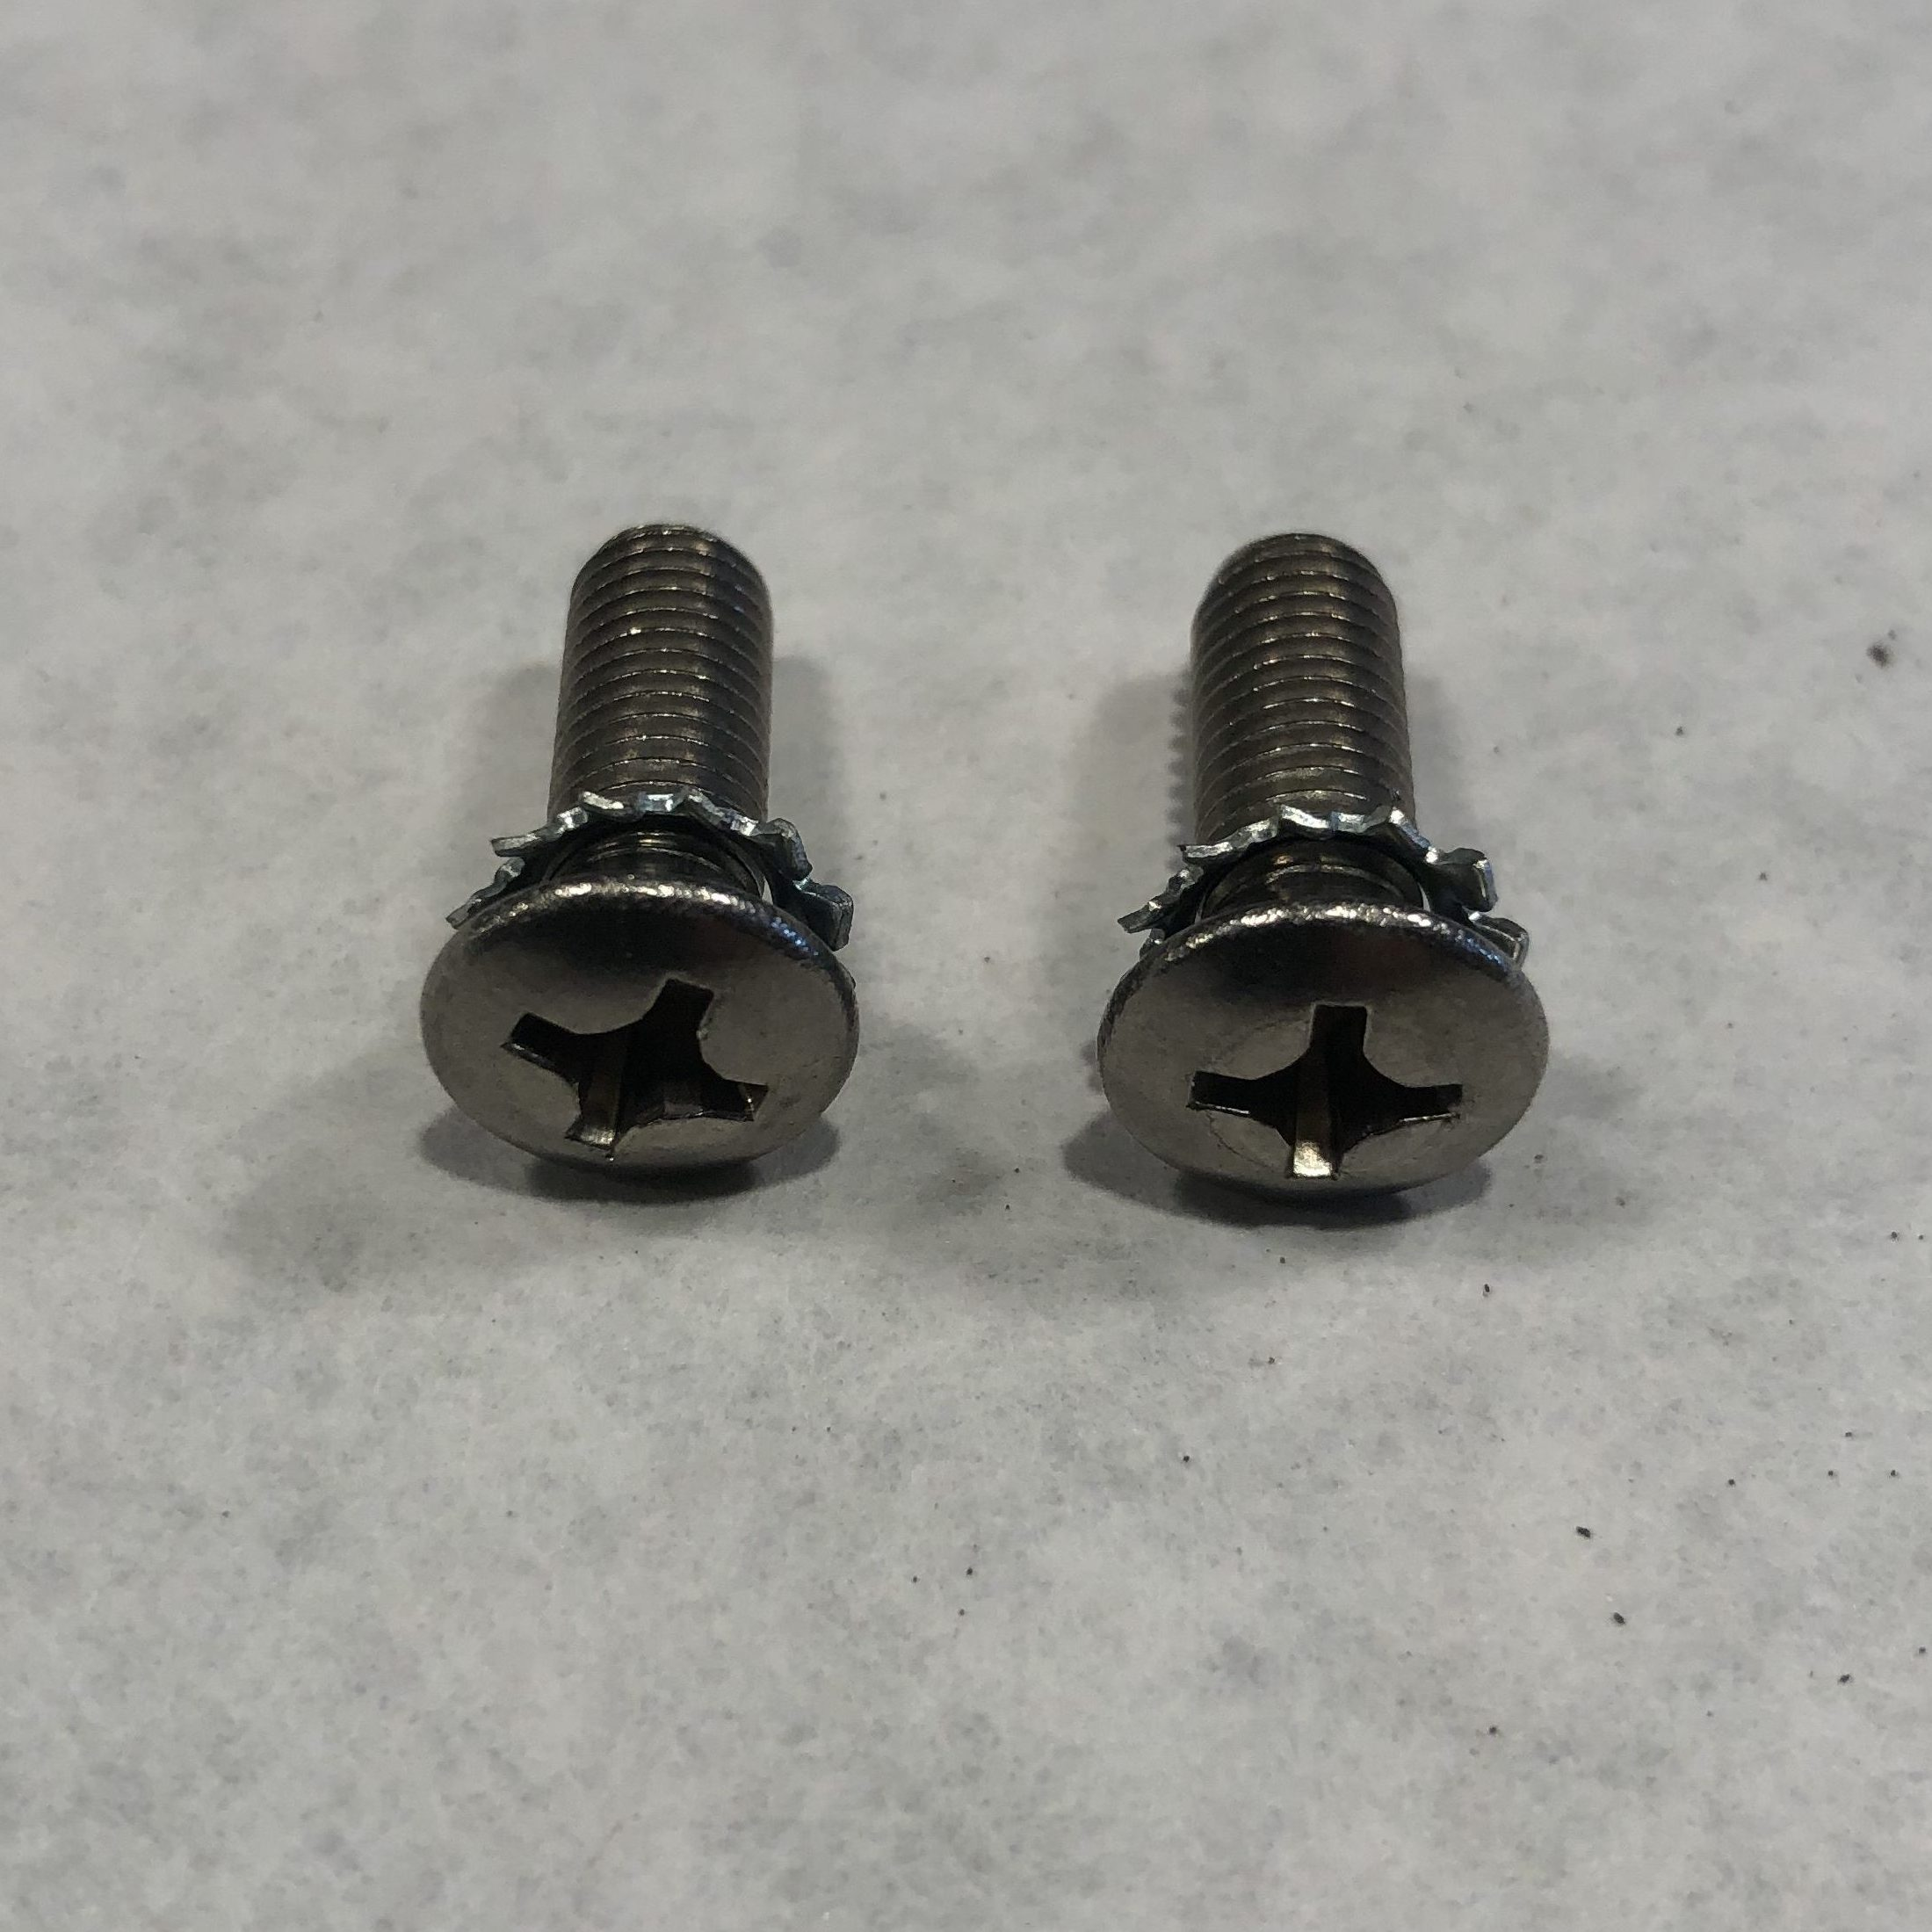 48-53 SS Door Latch Screws And Star Washers